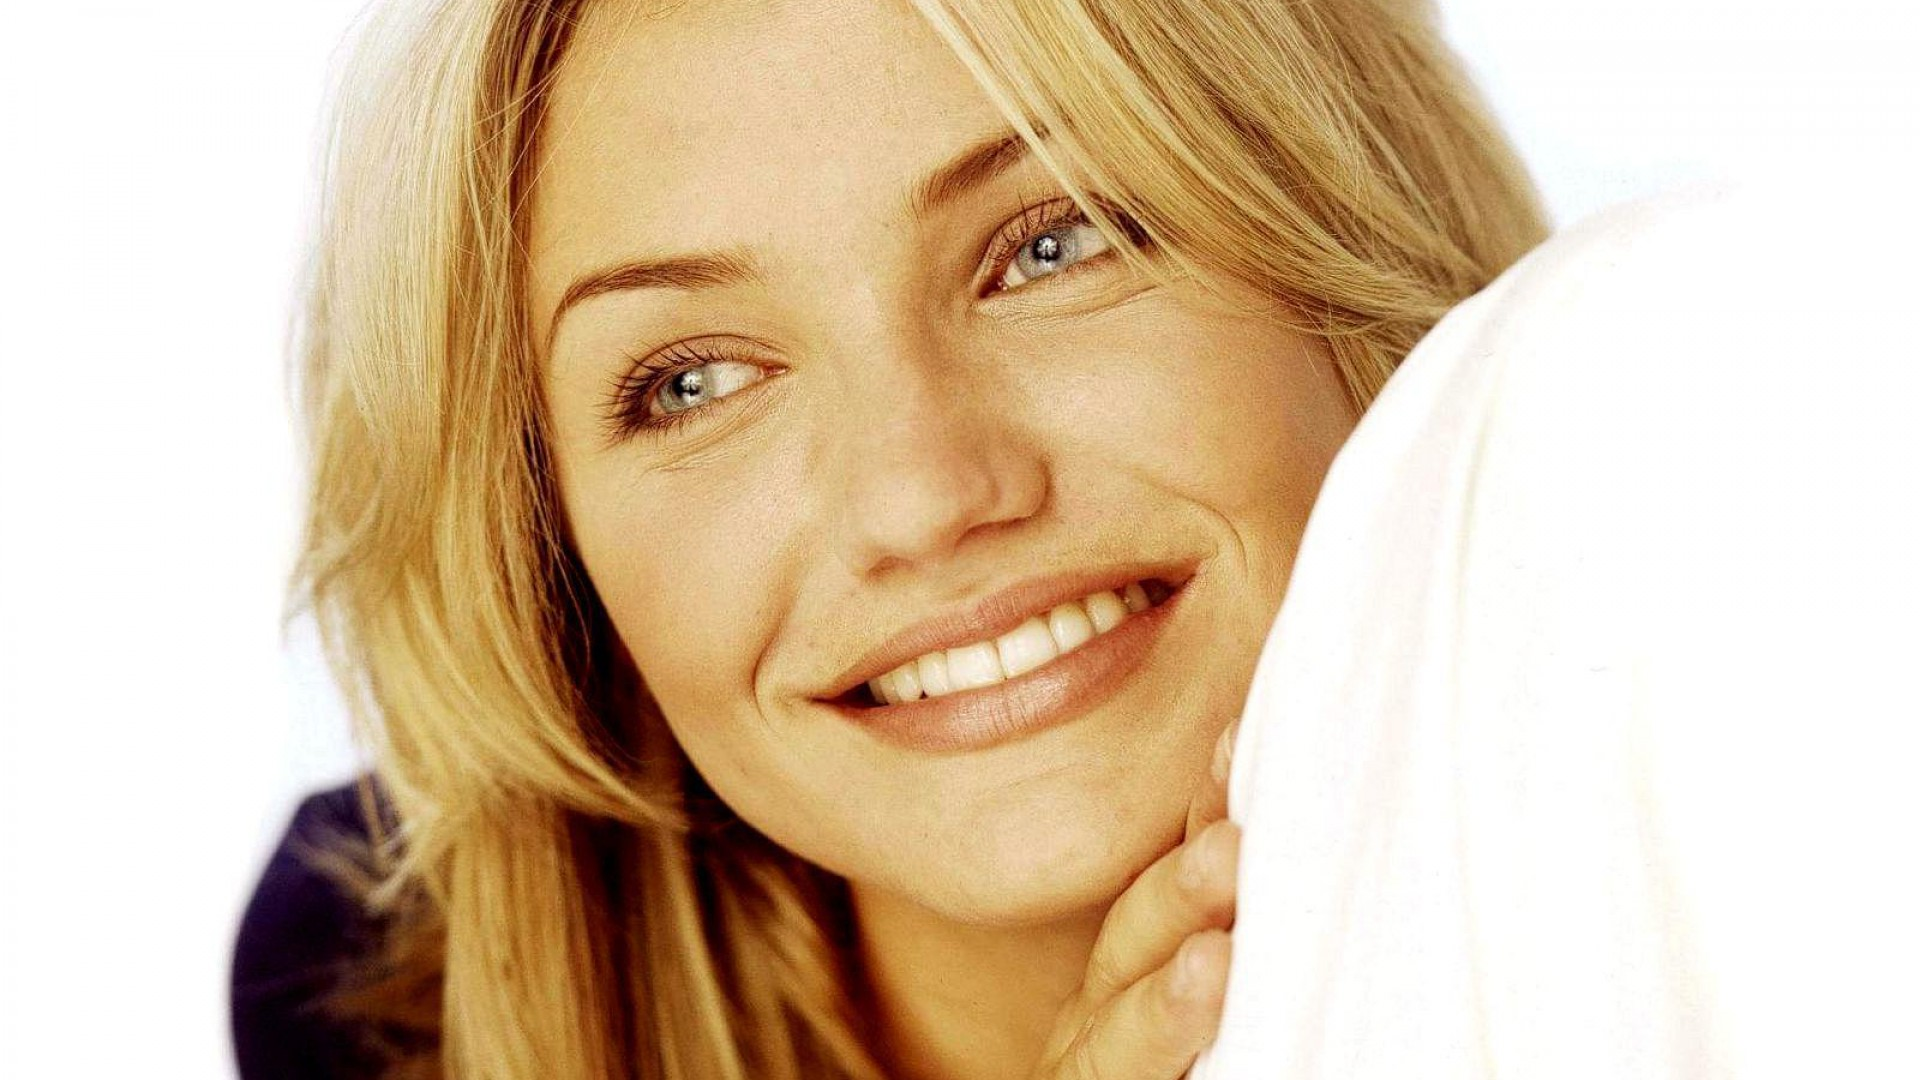 Cameron Diaz Wallpapers, Pictures, Images